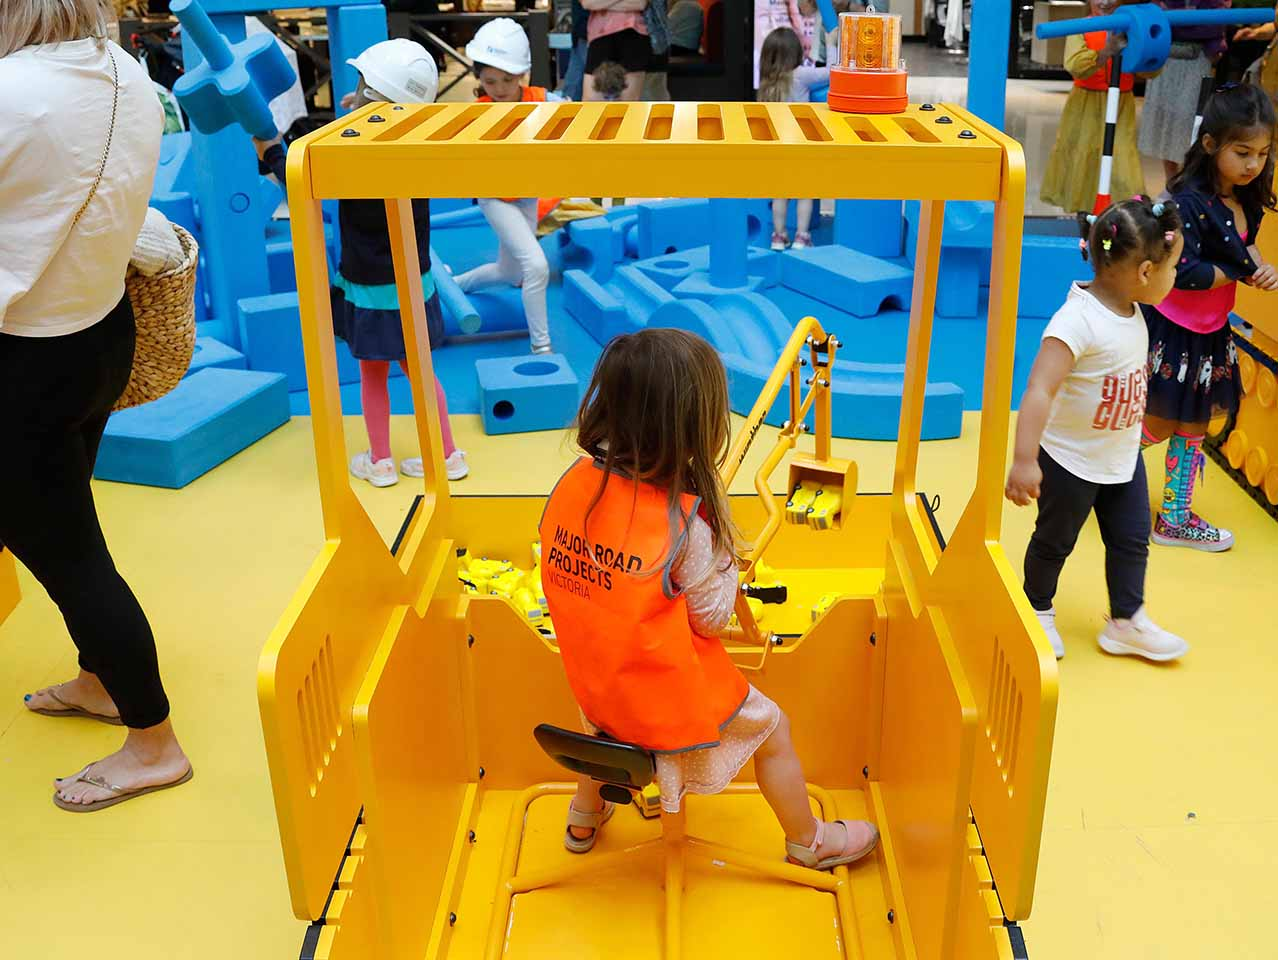 Families enjoying the construction activities at the Southland event